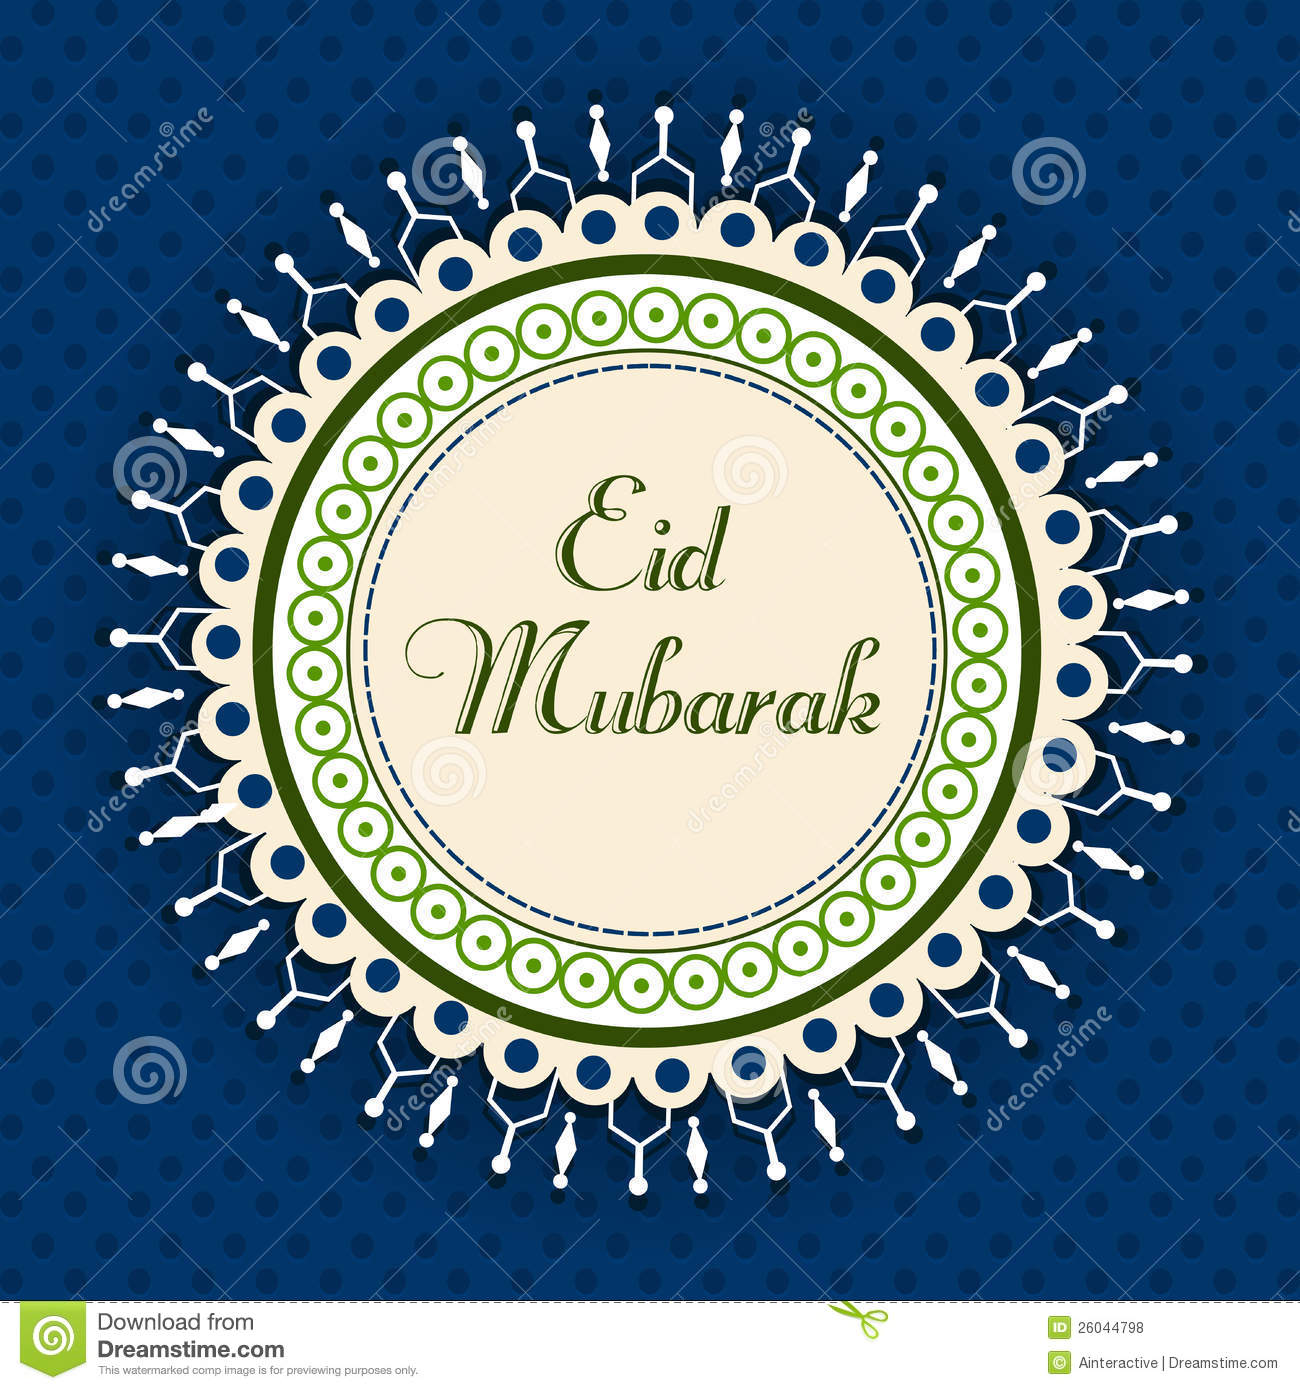 Eid mubarak greeting card stock vector illustration of card 26044798 eid mubarak greeting card kristyandbryce Image collections